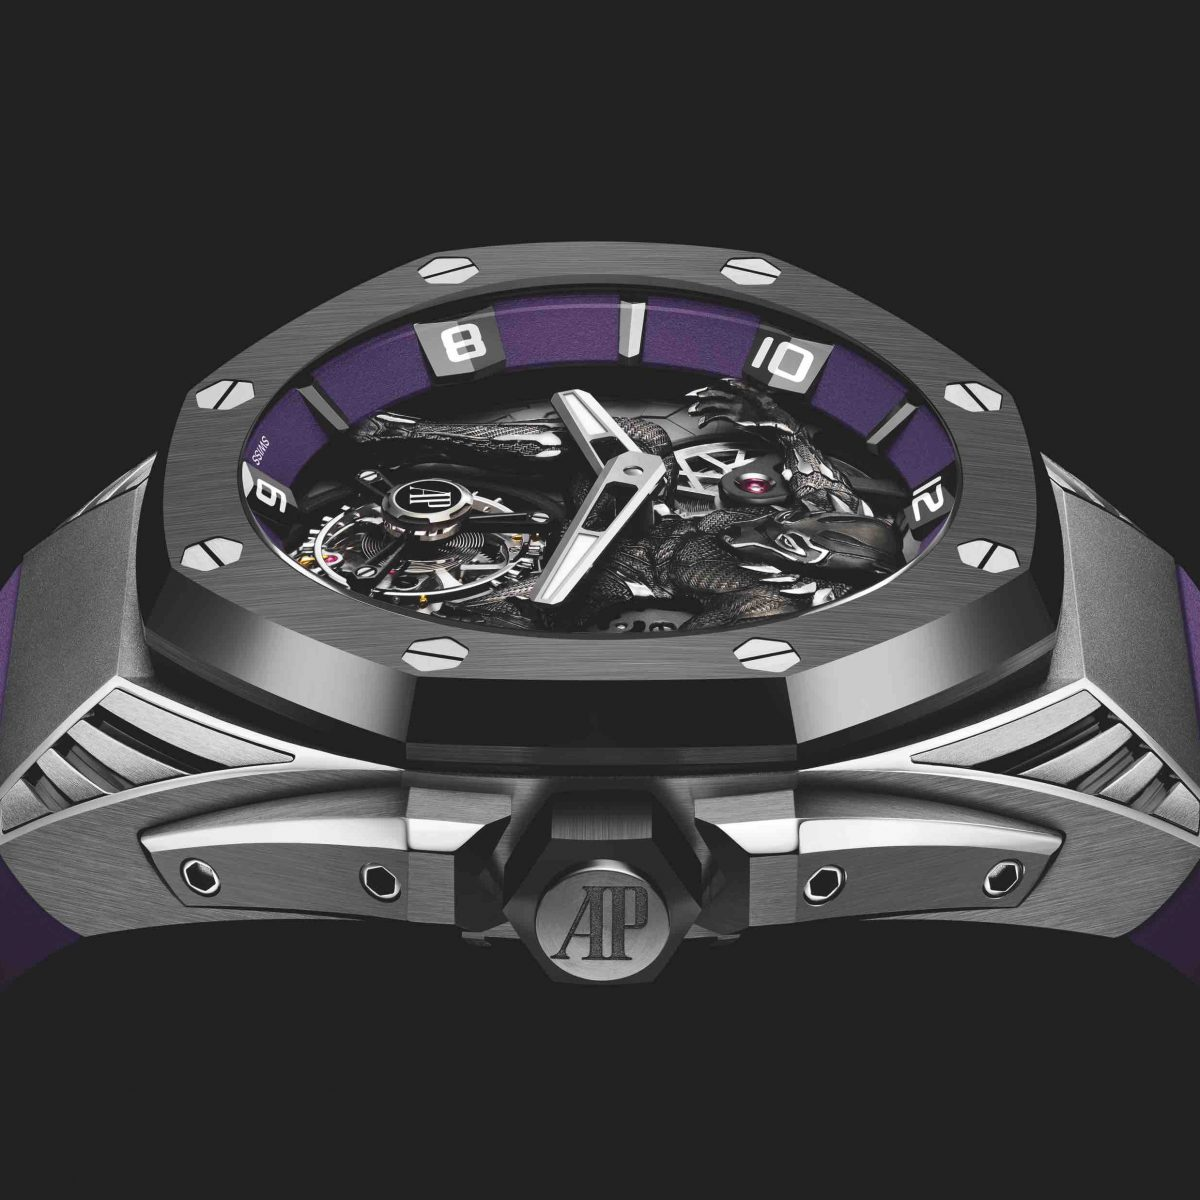 The Royal Oak Concept titanium case adds some technical looking details, such as the crown protectors and the grooved lugs.